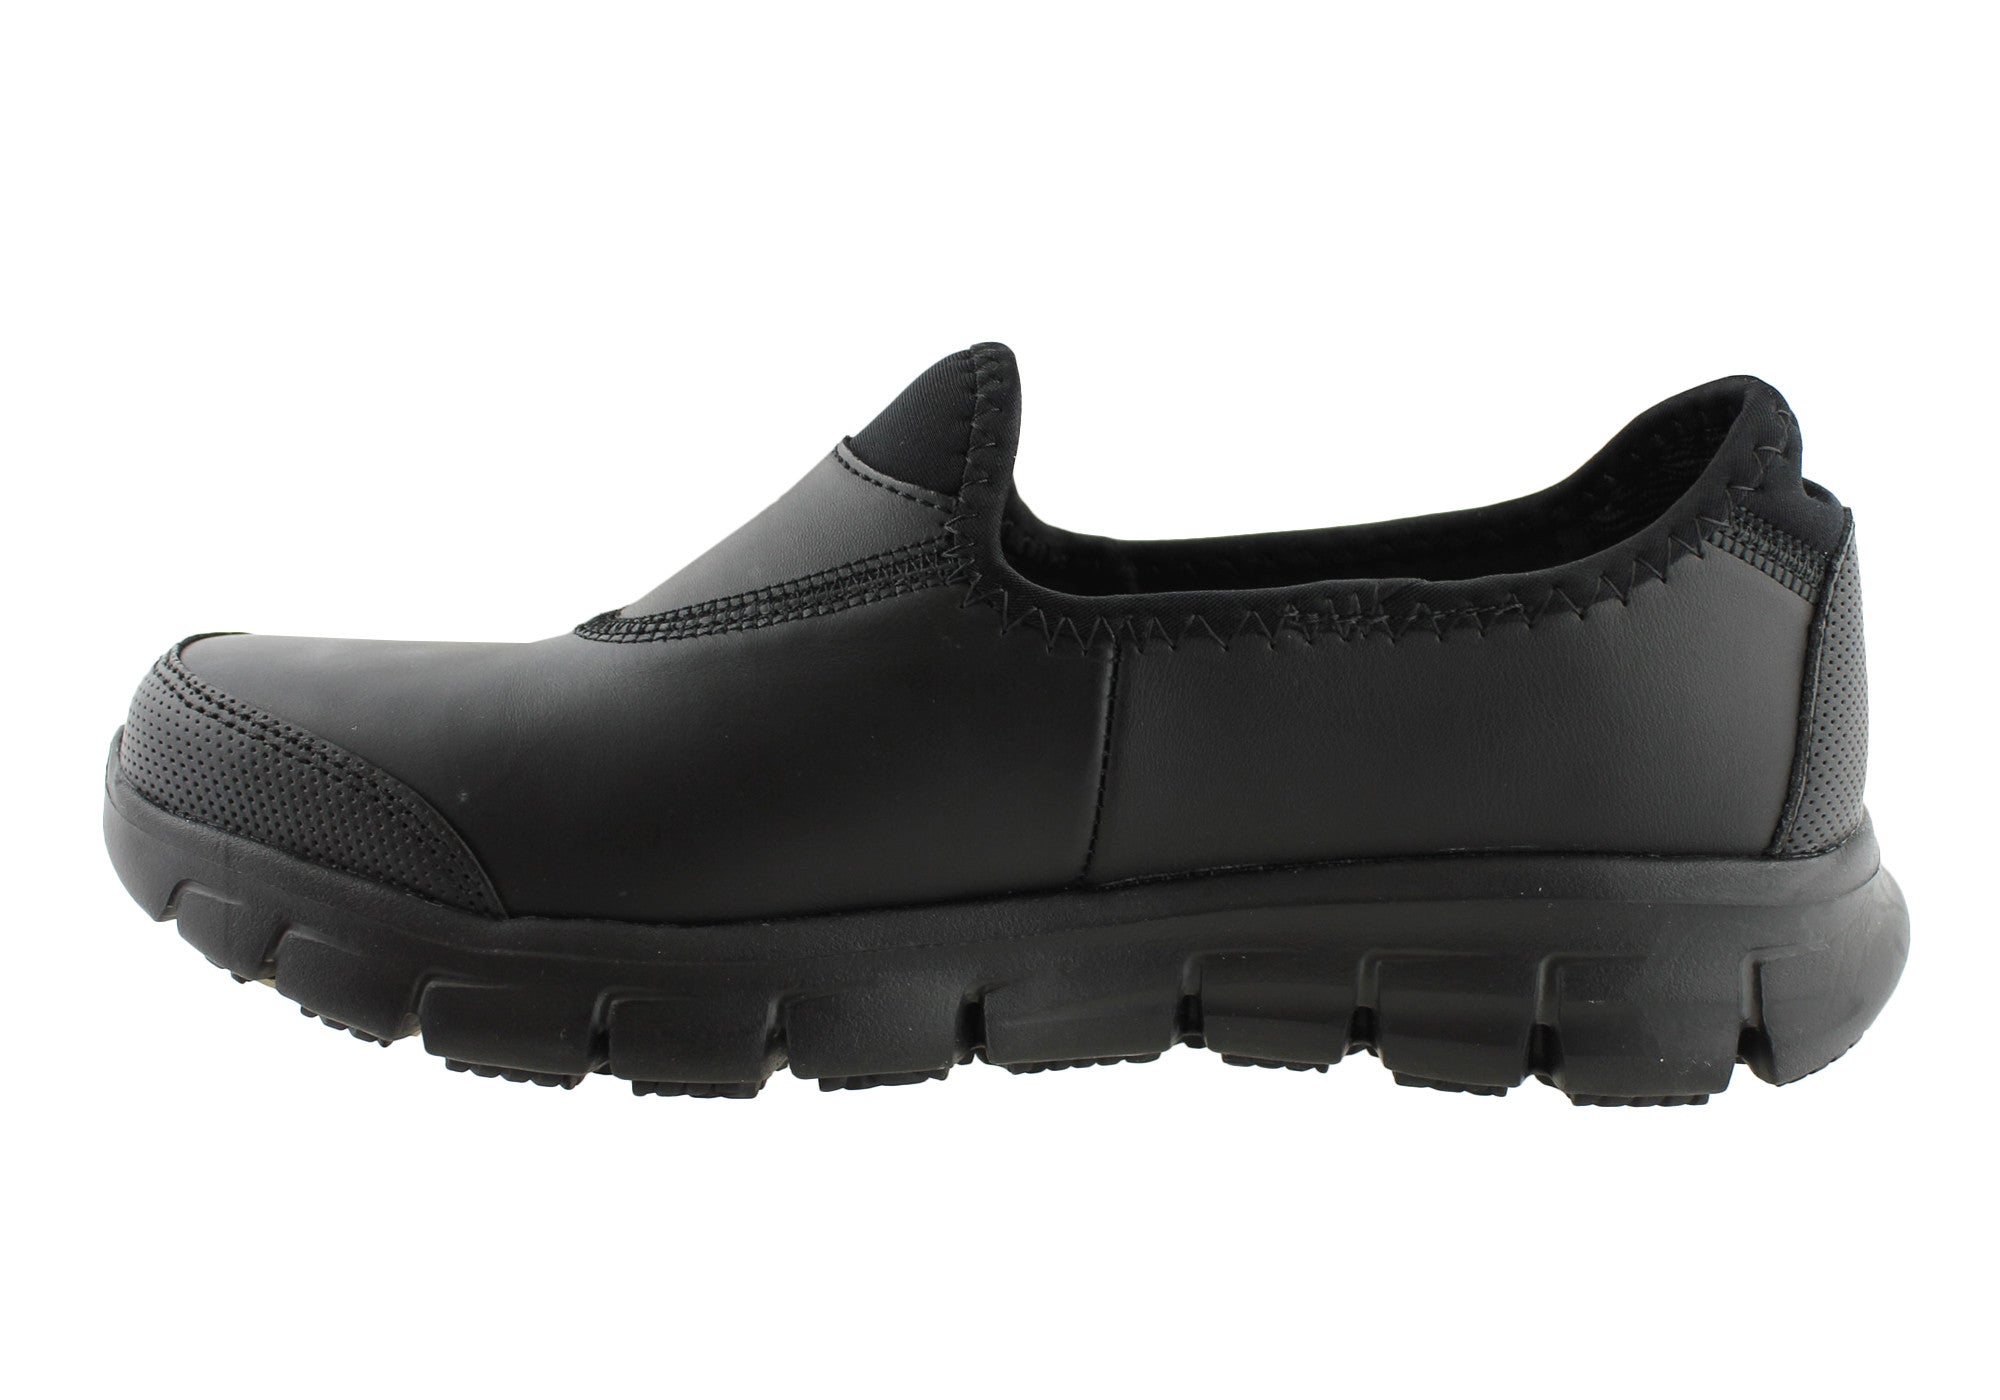 Black Slip Resistant Work Shoes For Women Under